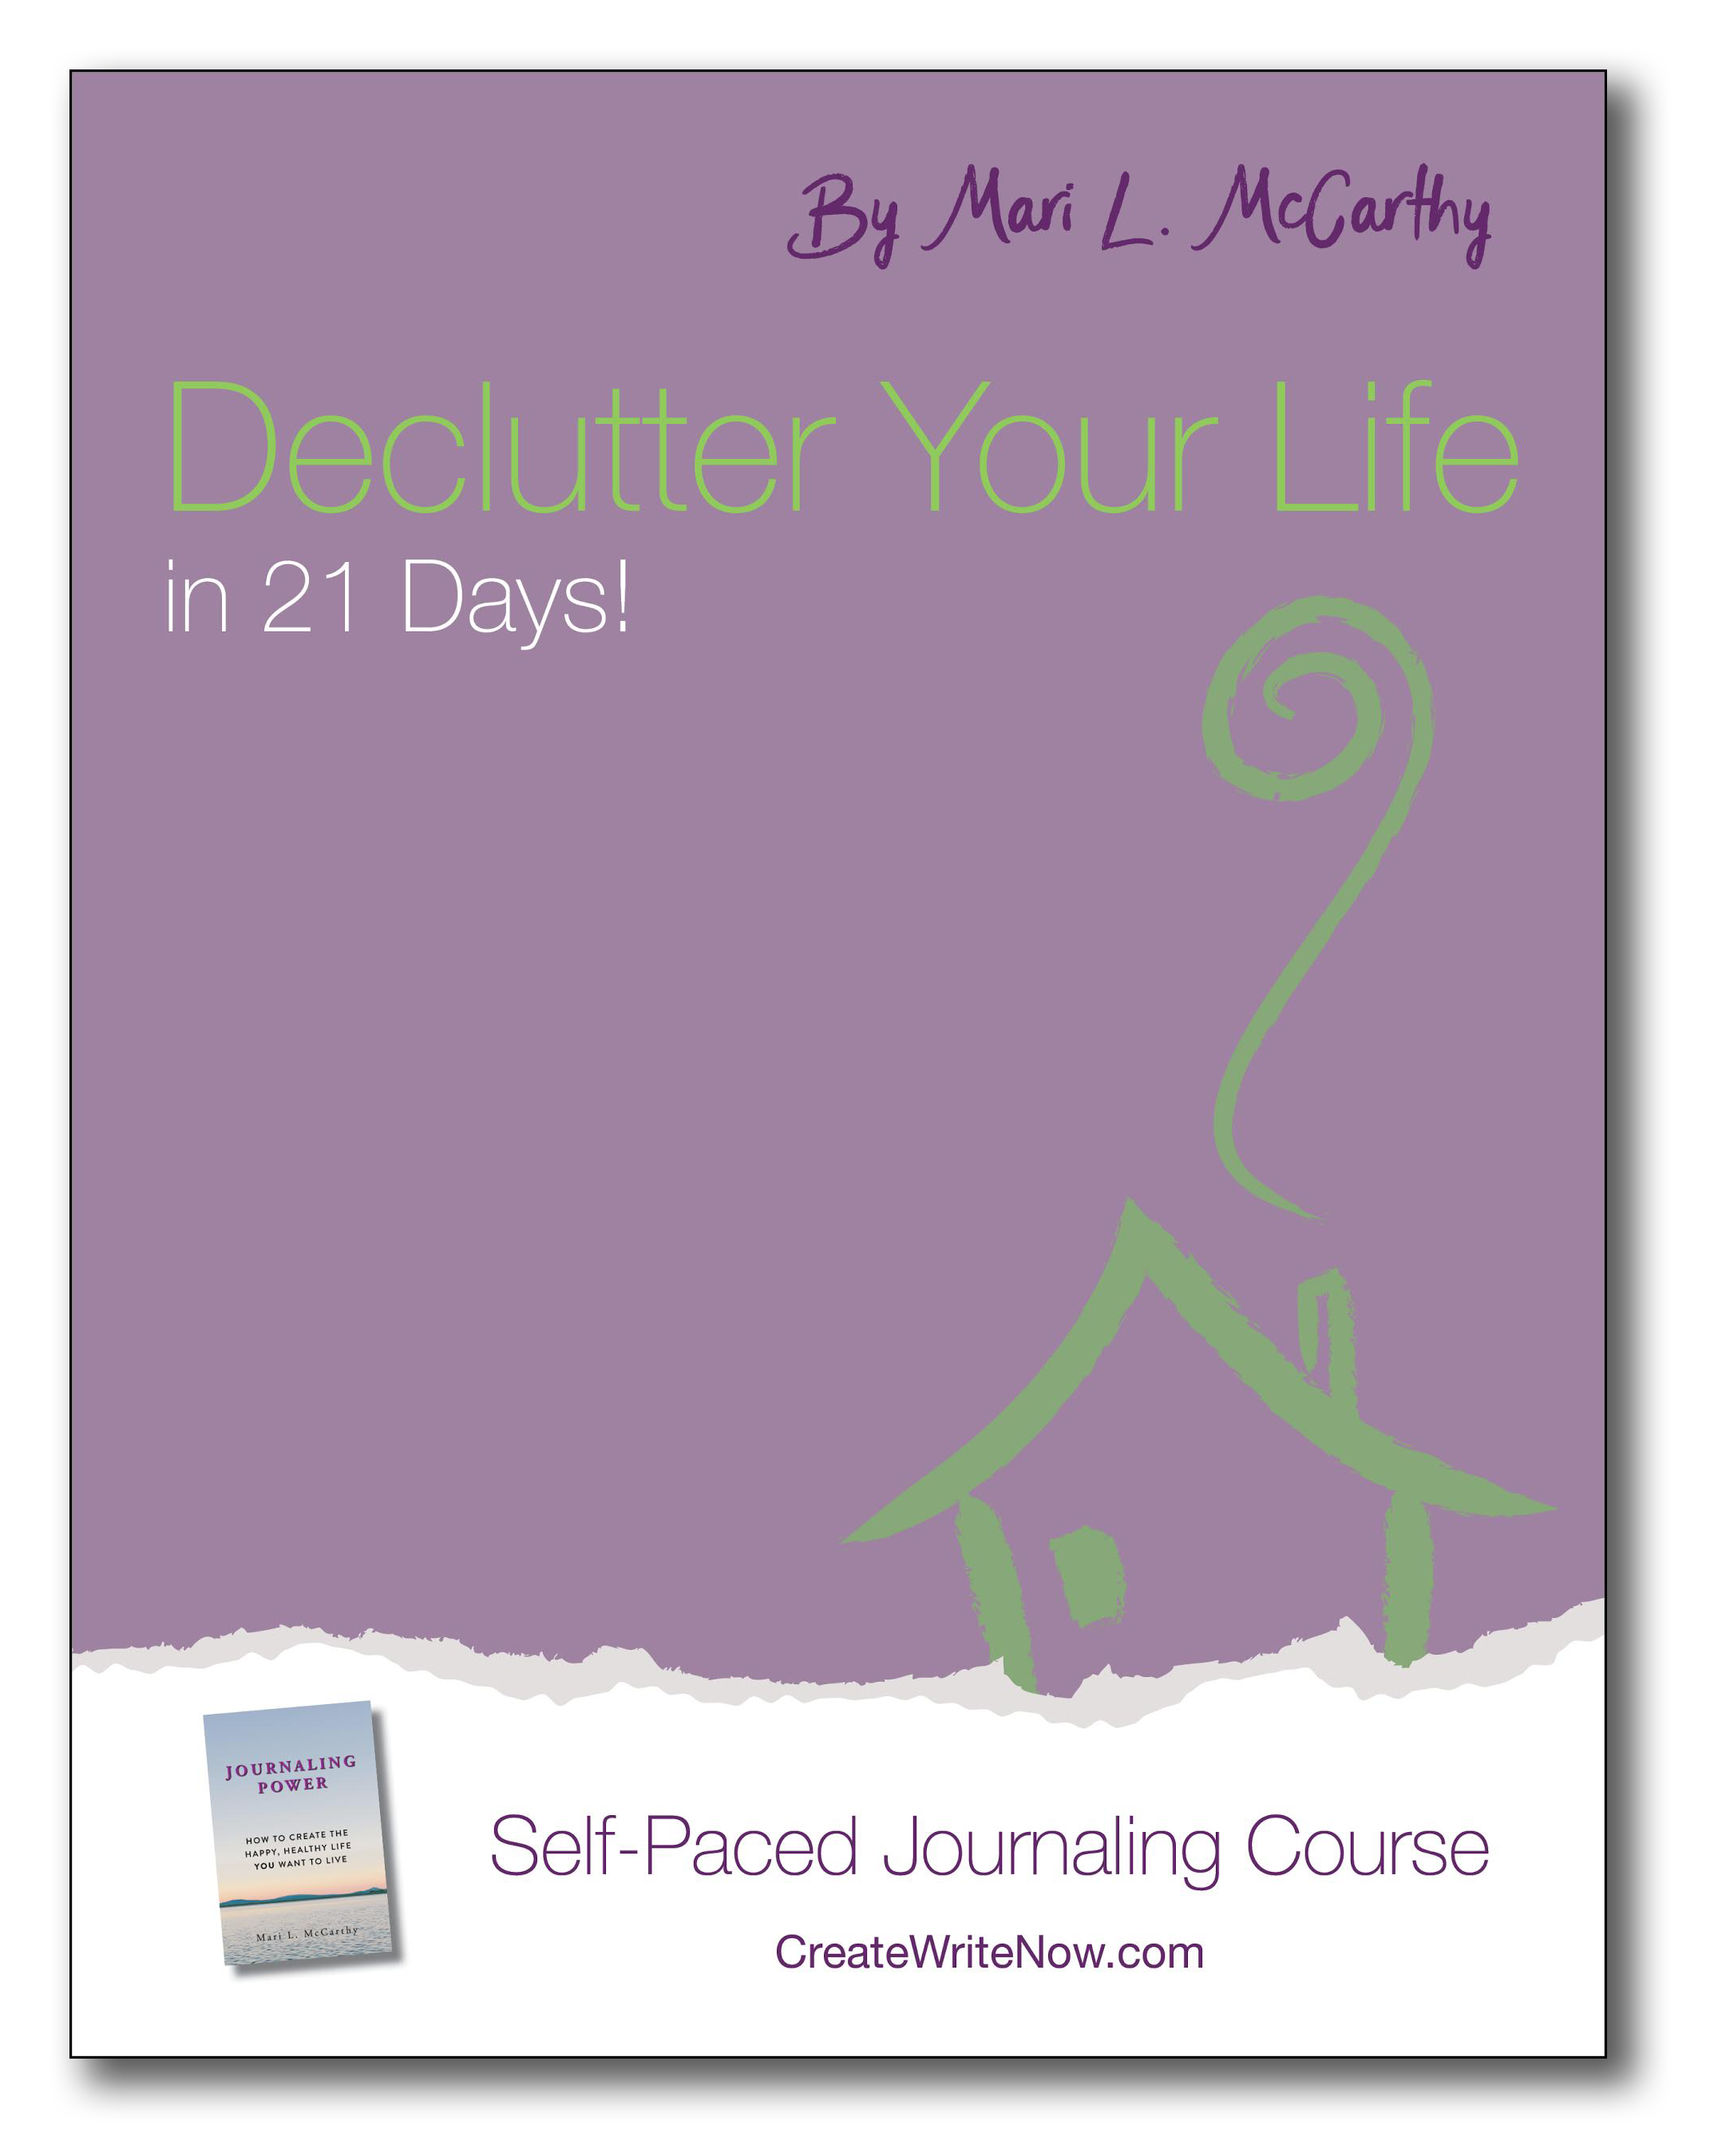 Declutter Your Life - Self Paced Journaling Course.png